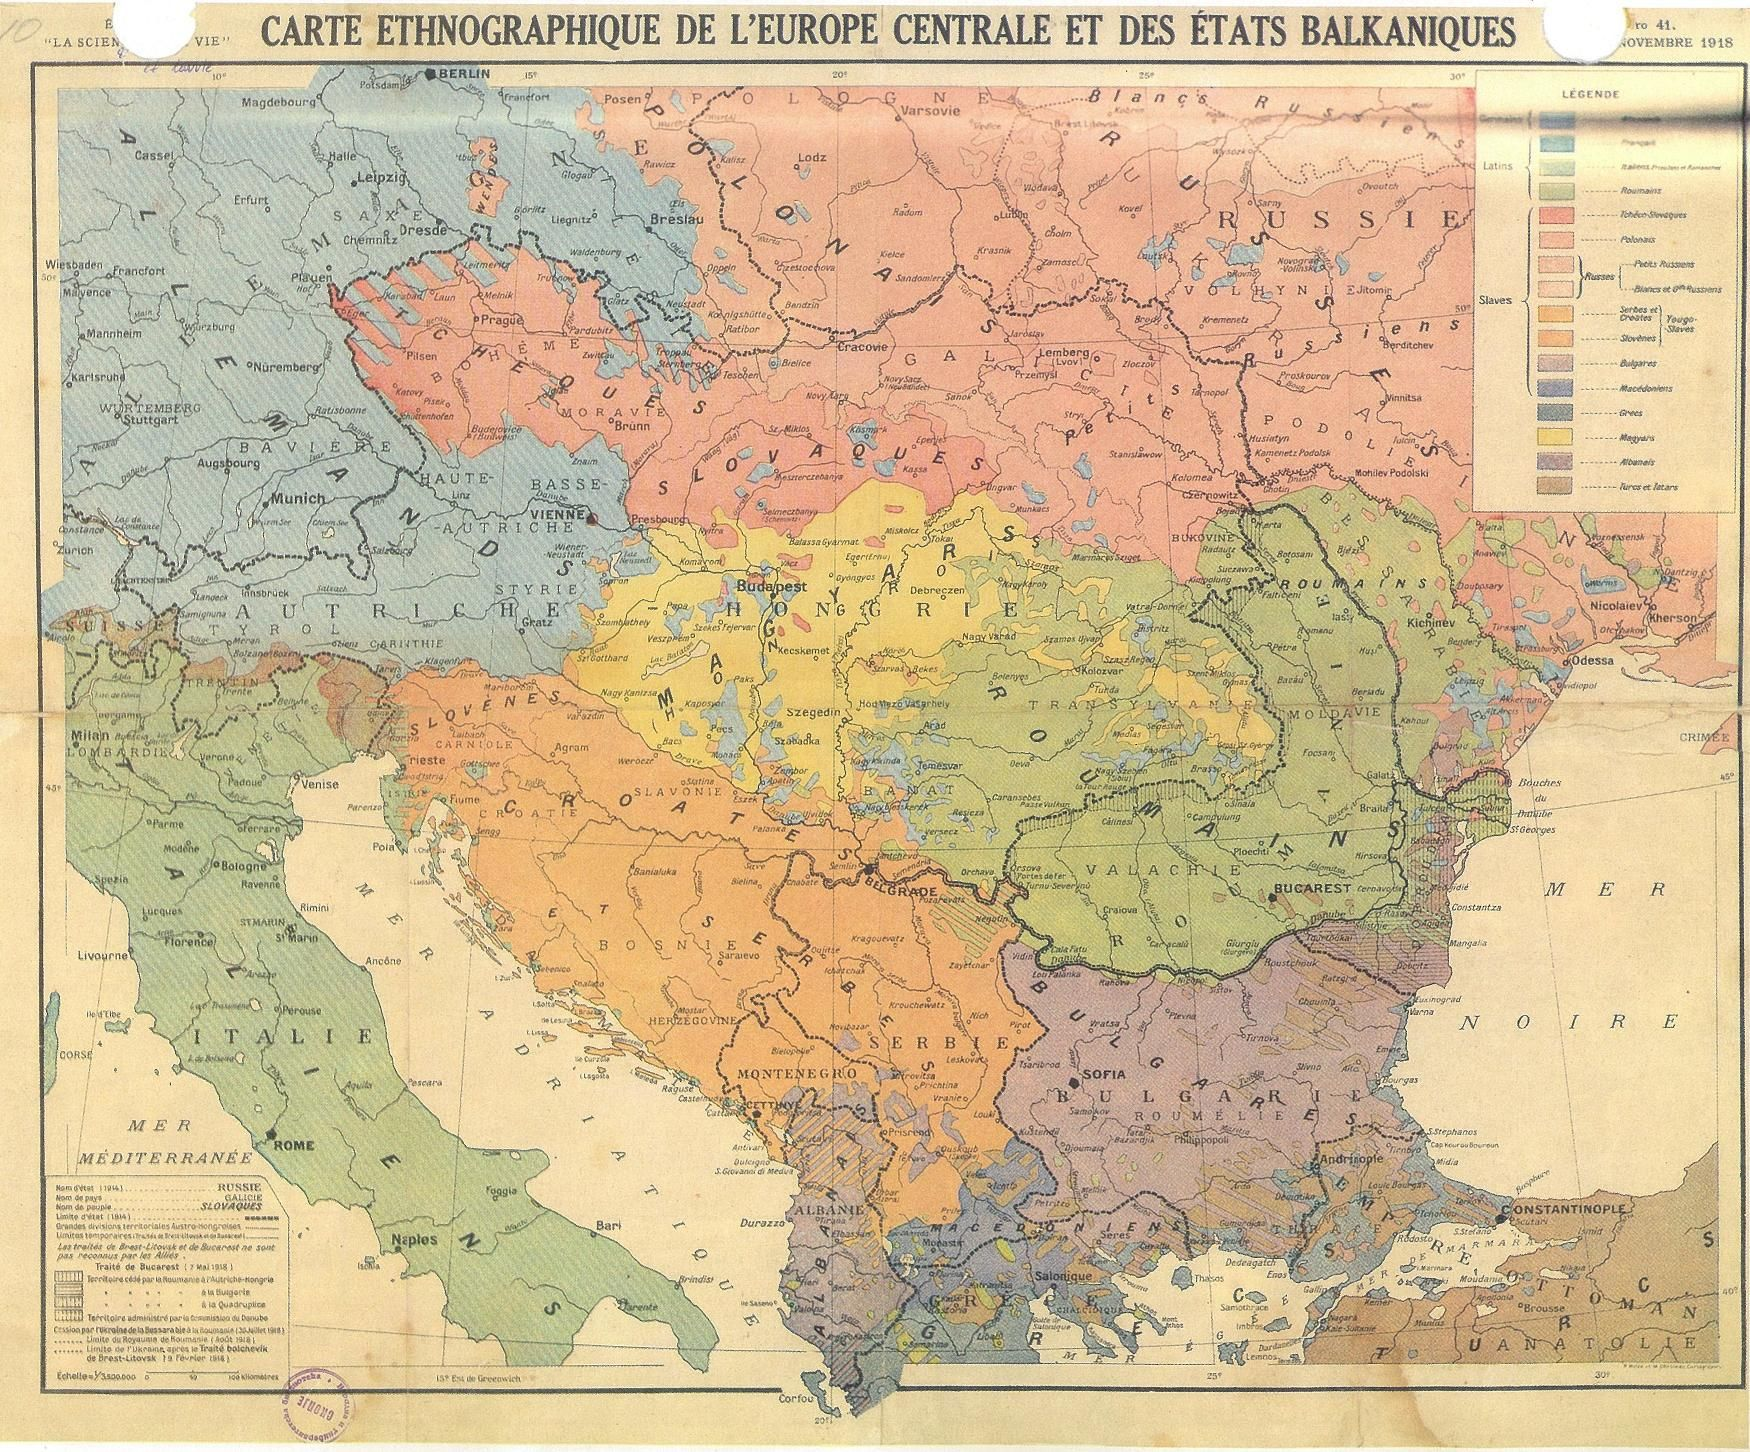 Ethnic Composition Of The Northern Part Of The Balkans In 1880